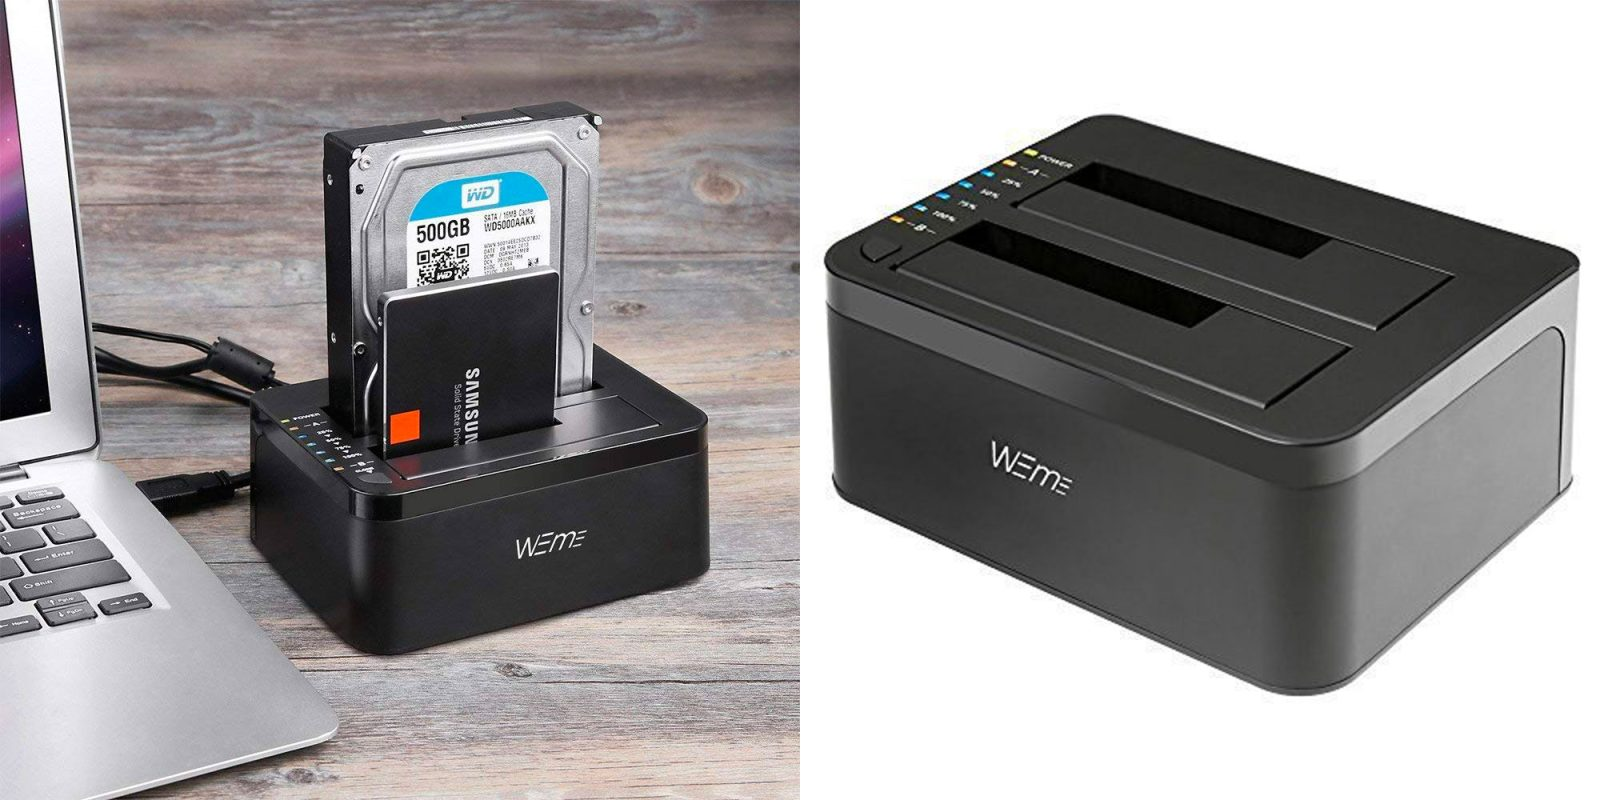 For $20, anyone who works on computers should have this dual USB 3.0 SATA dock